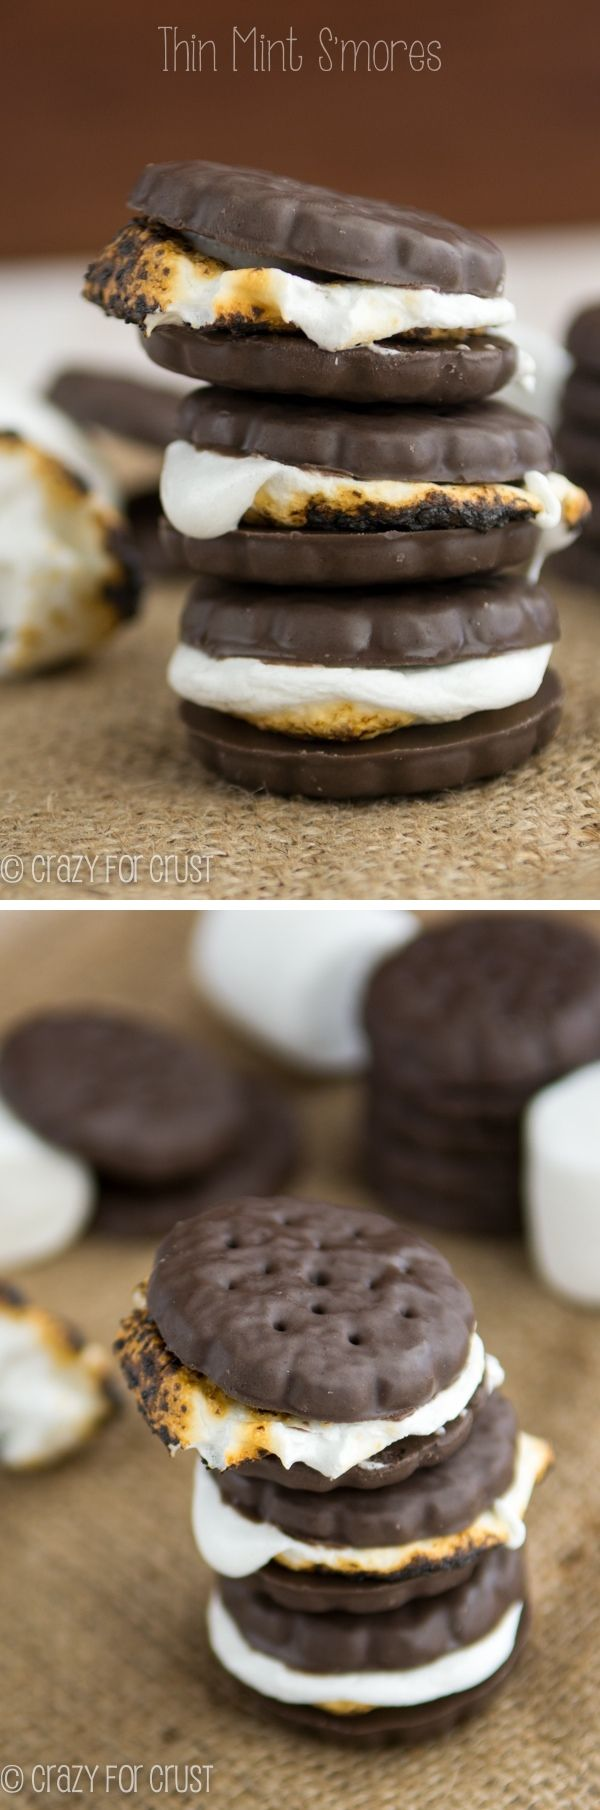 Thin Mint S'mores | crazyforcrust.com | The easiest recipe ever! @Ian Hahn for Crust: Crazyforcrust With, Girl Scouts Cookies, Mint Smores, Easiest Recipe, Cookies Smores, Food, Thin Mints, Mint S Mores